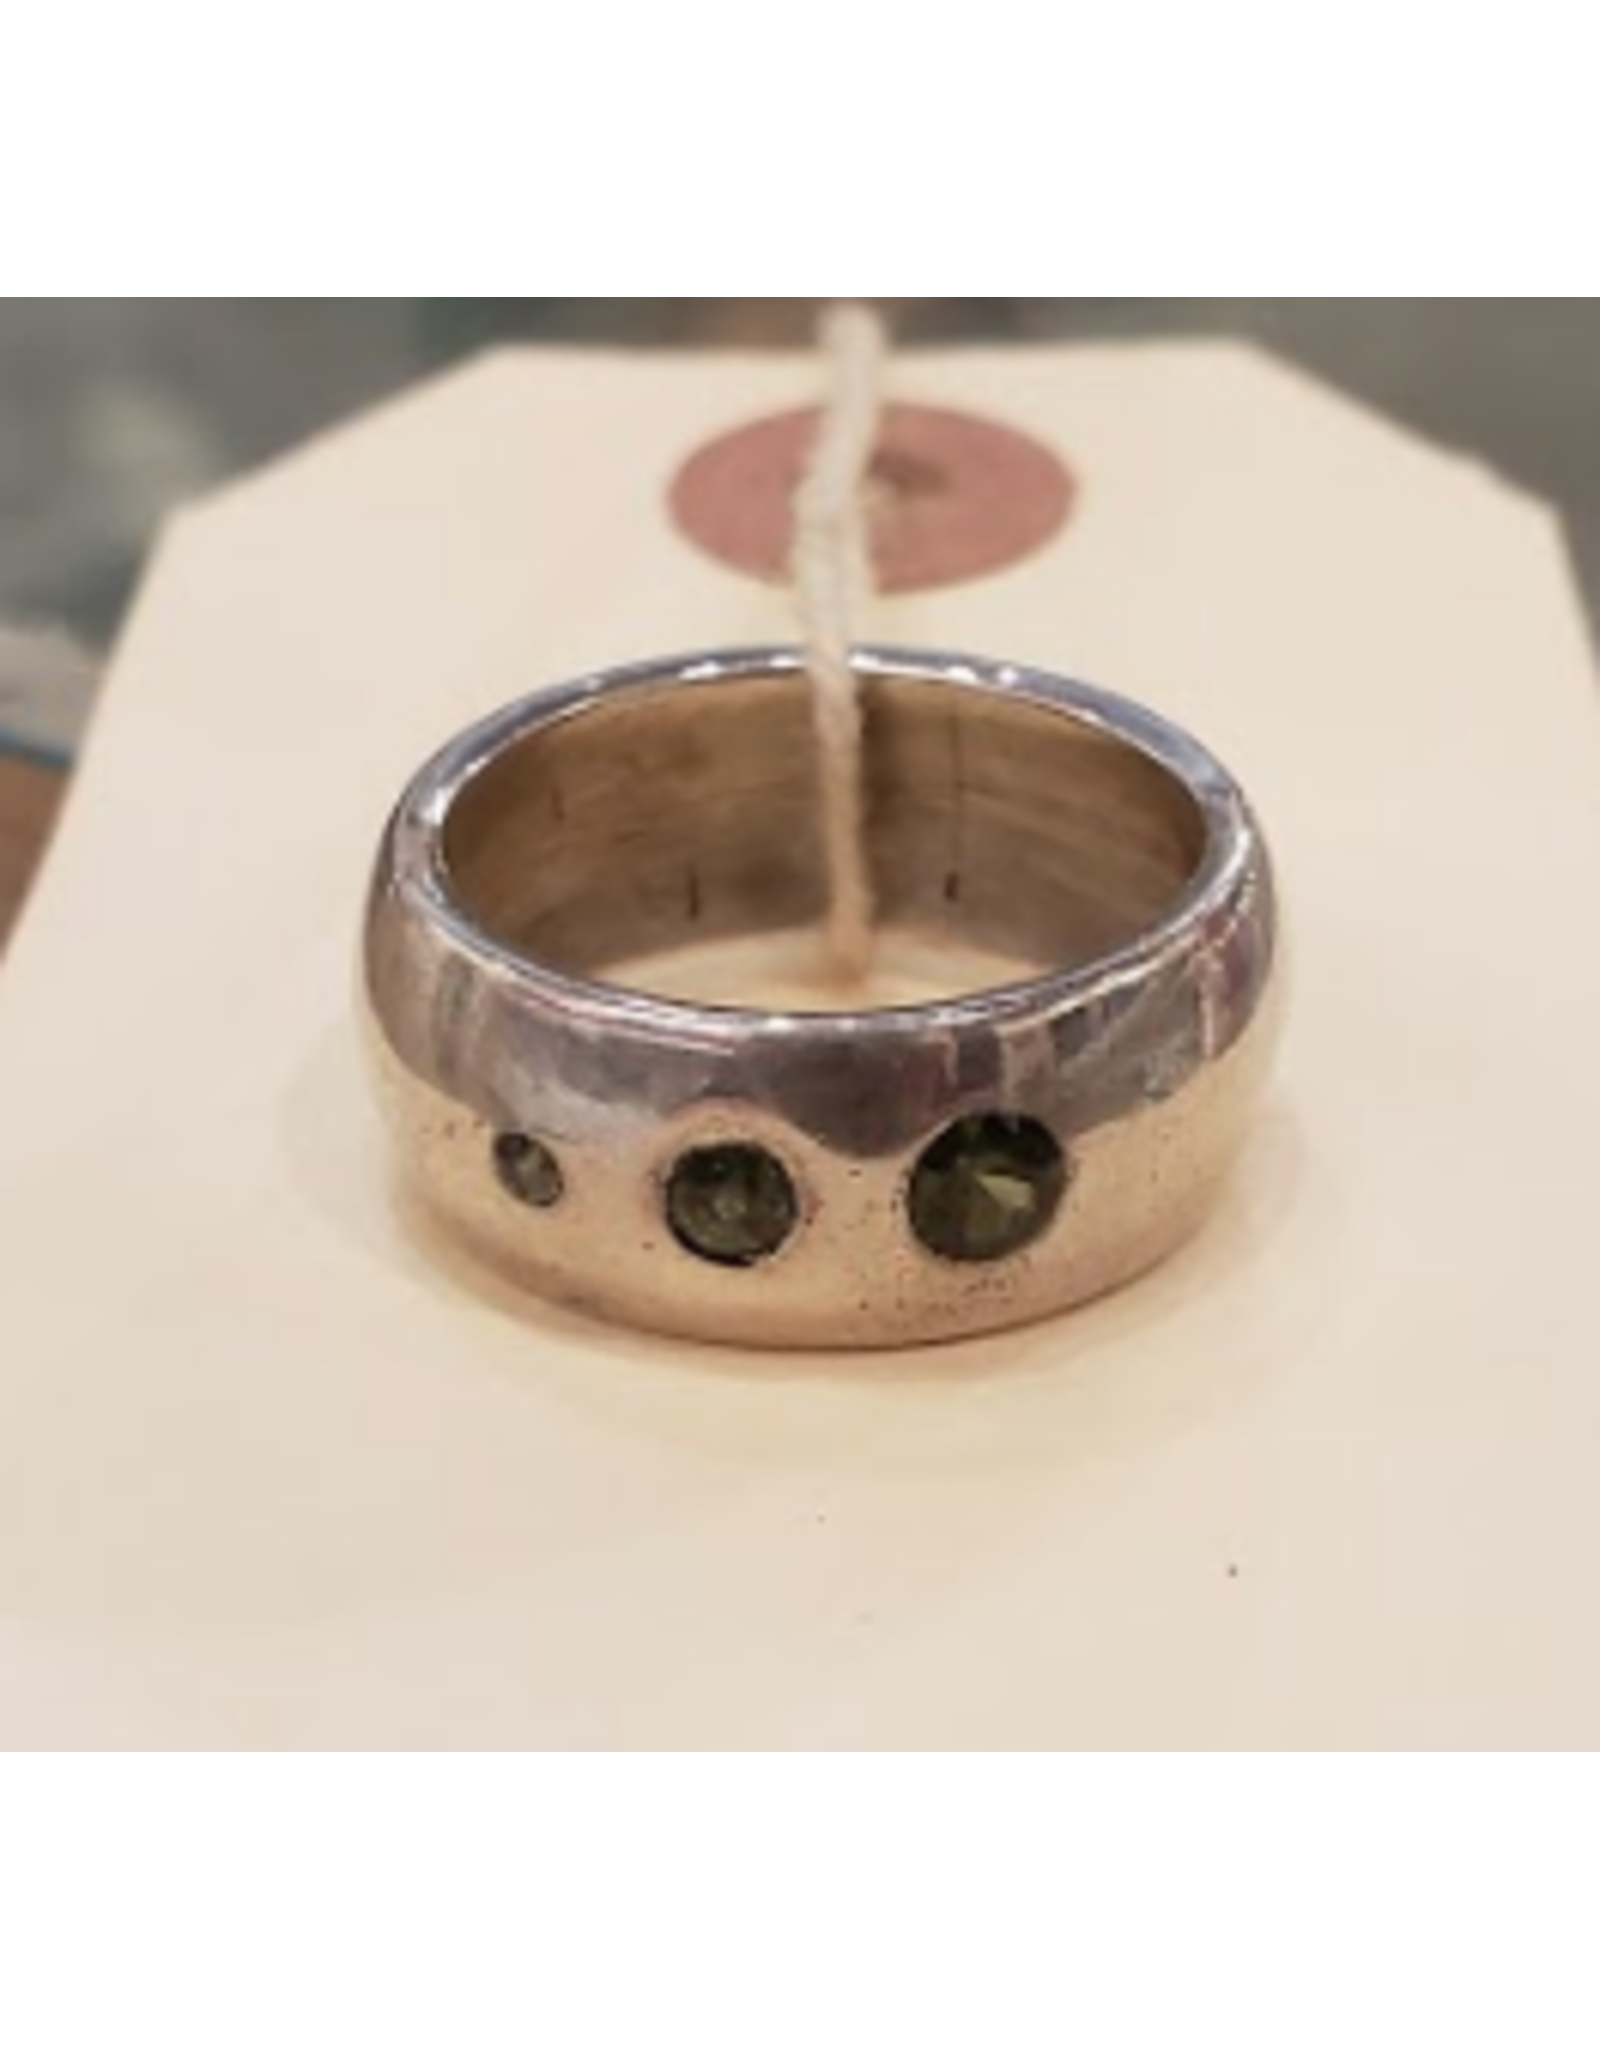 Chris Gillrie A Sapphire View Ring. Solid Silver wide band with 3 sapphire stones inset. Size 10.5